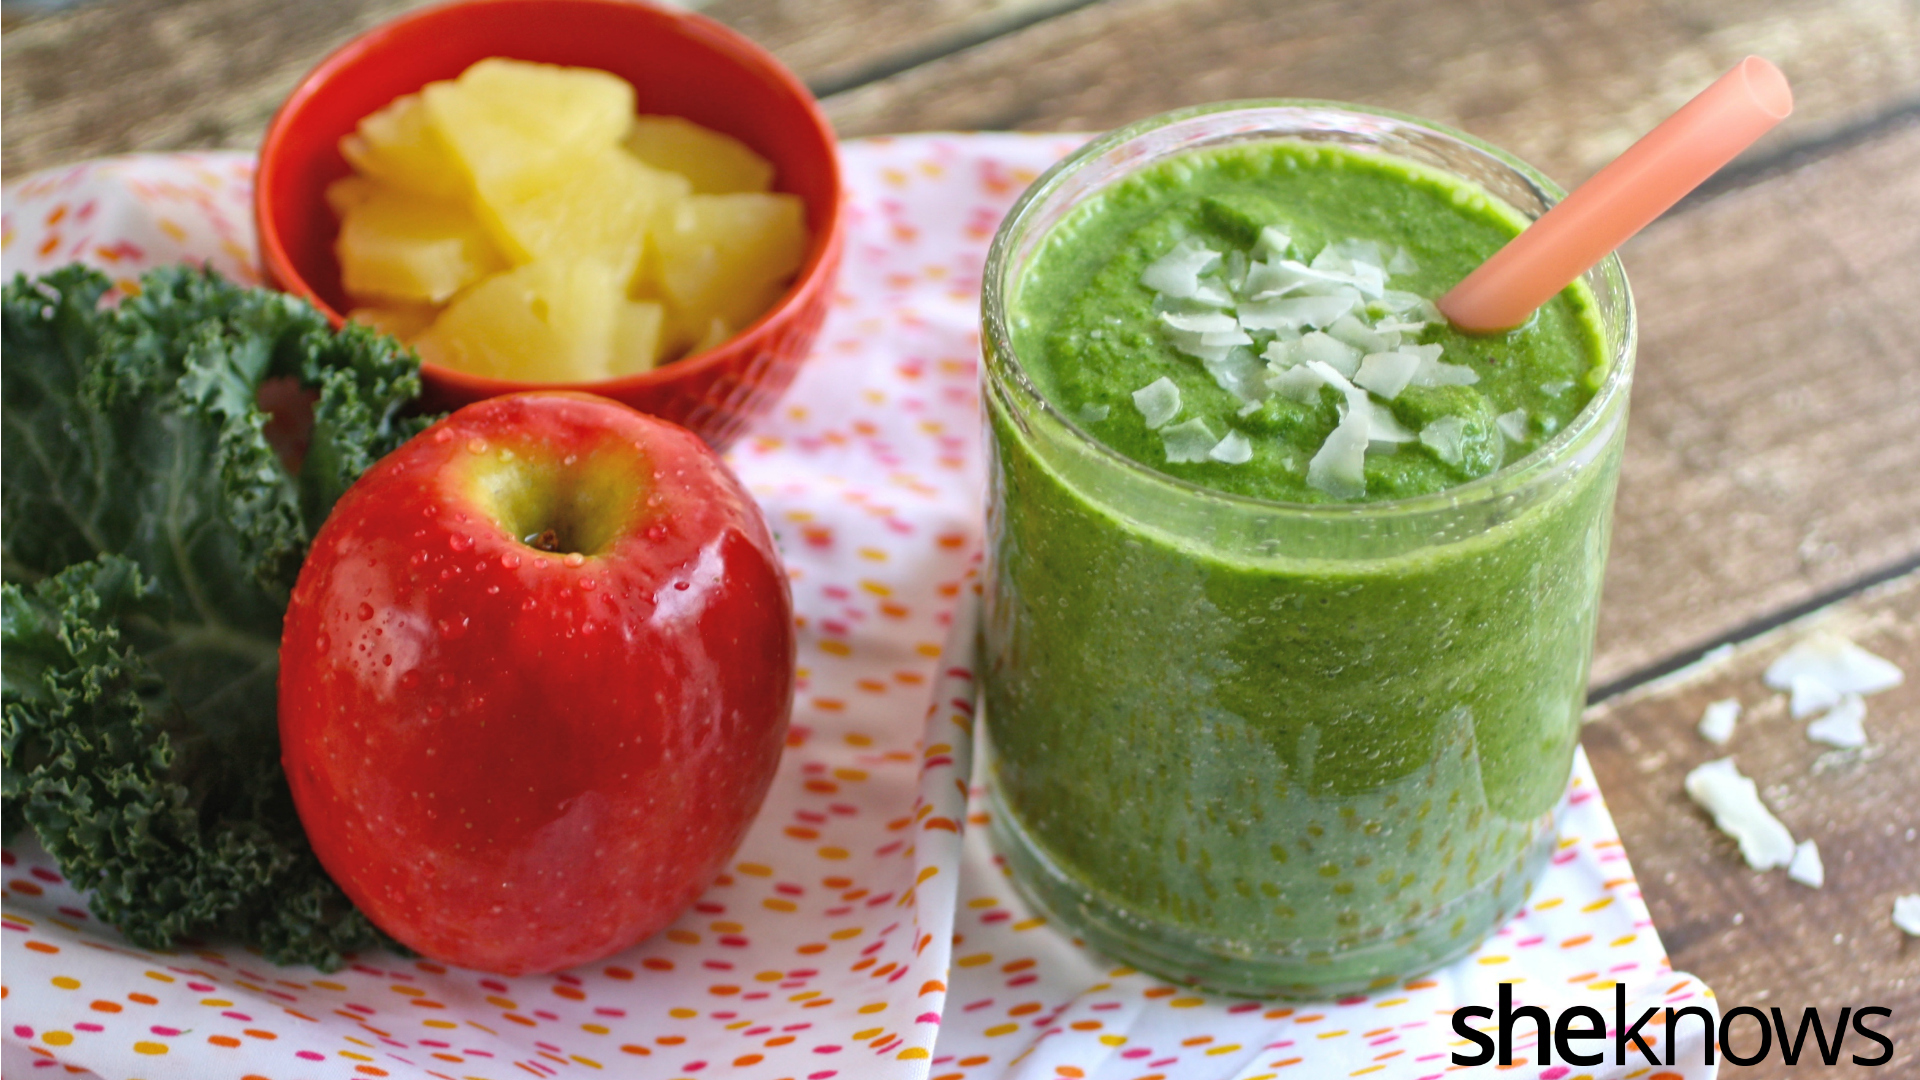 Easy Coconut Kale Smoothies For A Healthy Breakfast That Tastes